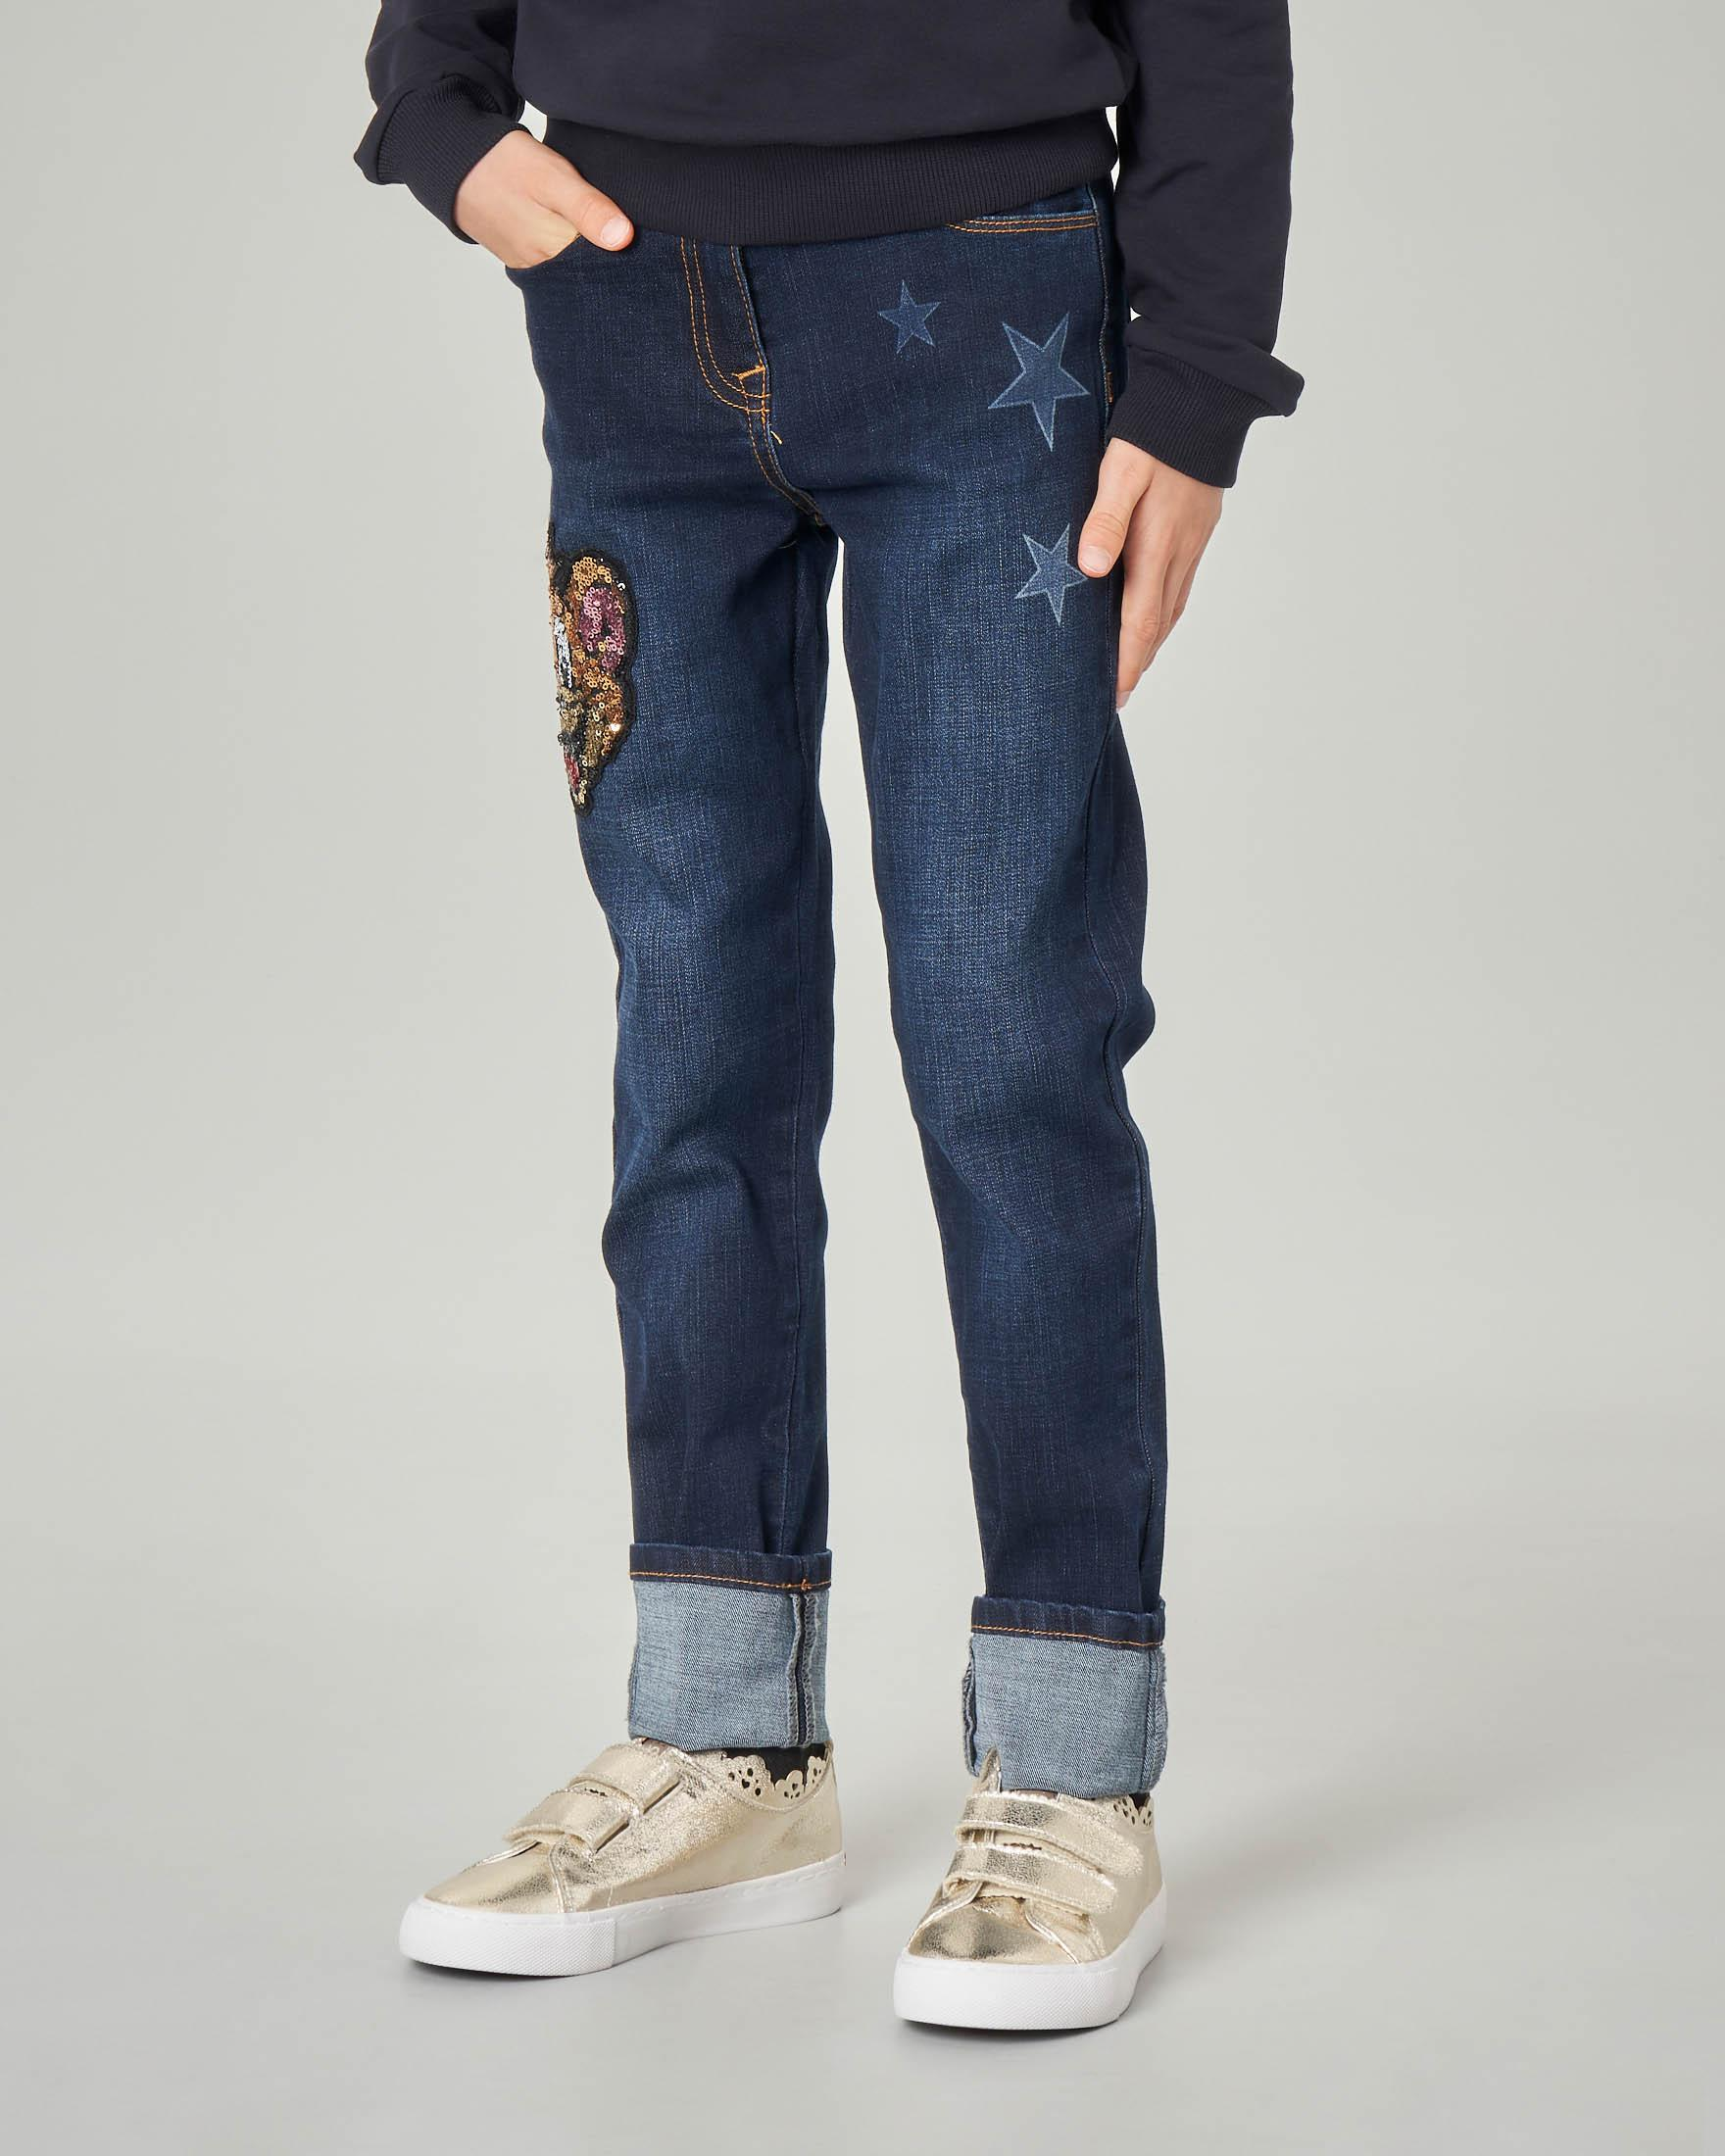 Jeans con stampa stelle e Jerry in paillettes applicato 4-10 anni